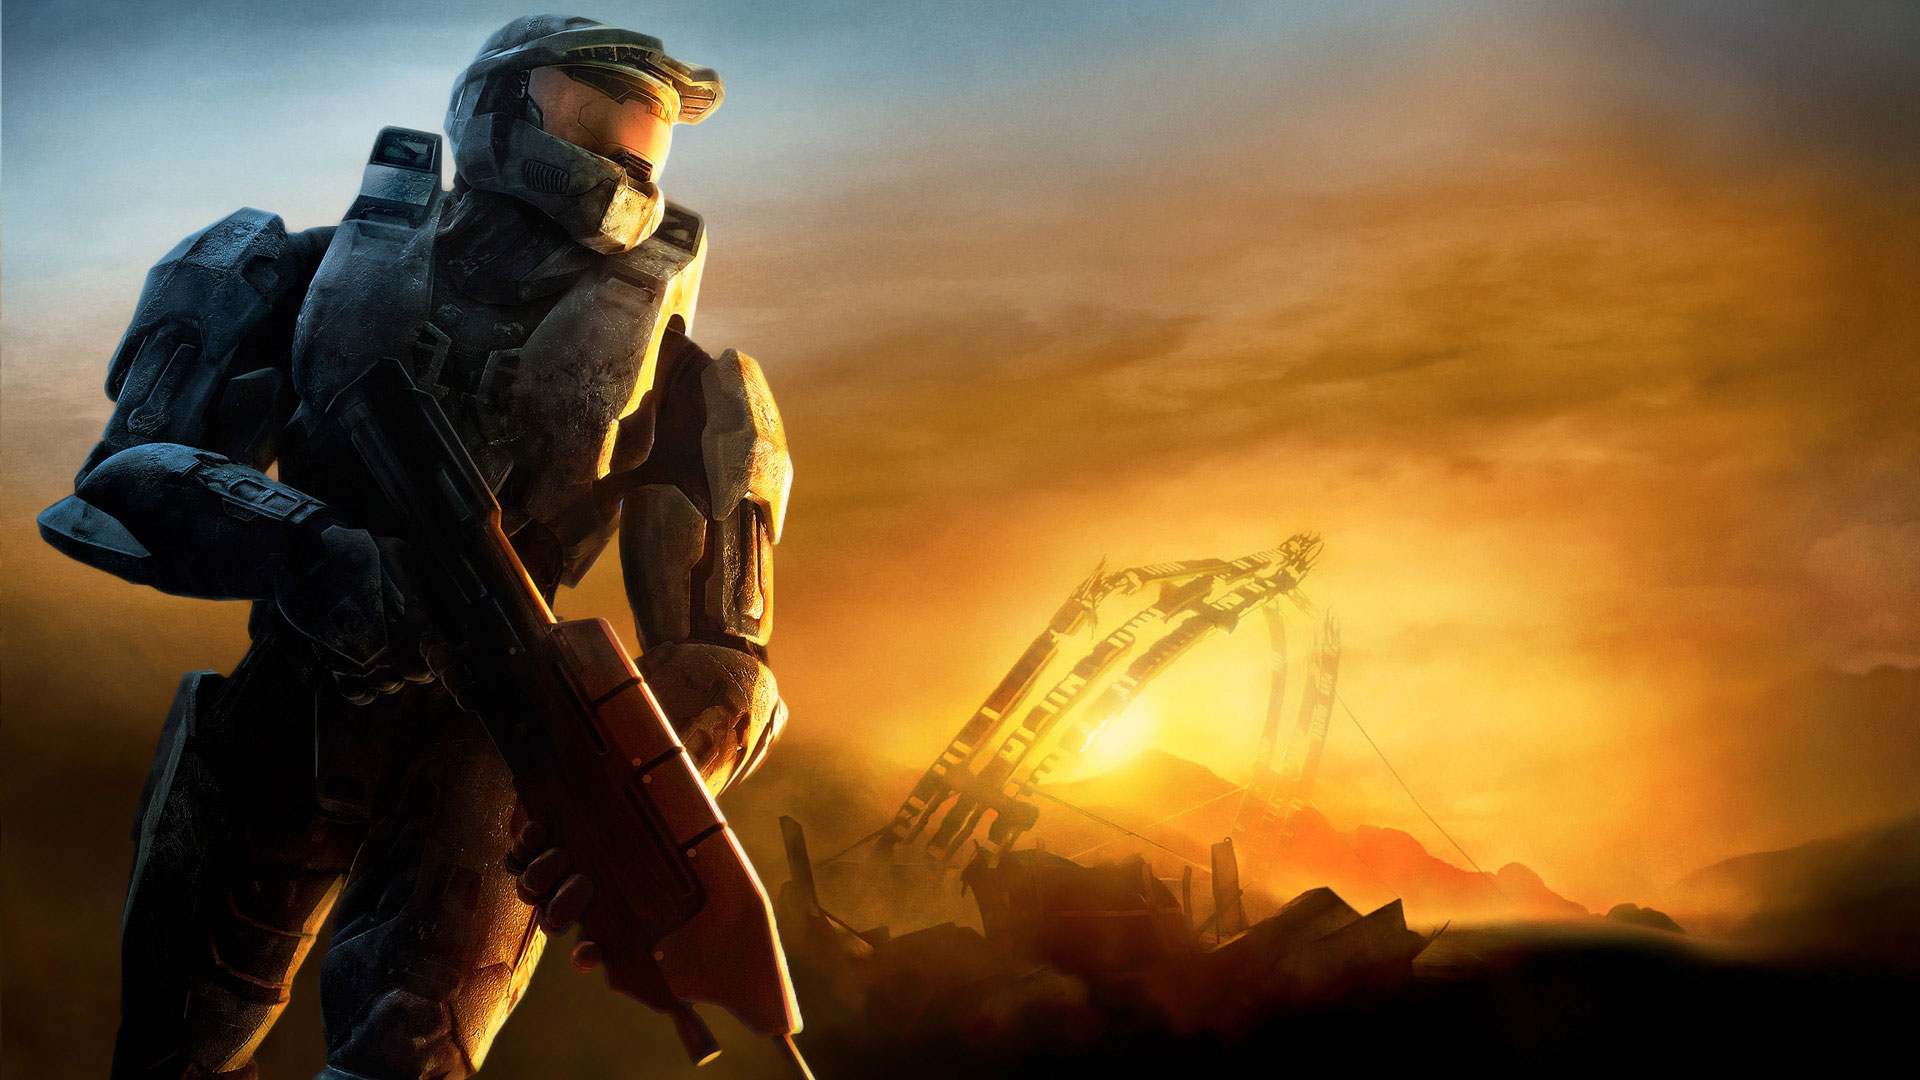 Halo Wallpaper Image Backgrounds 1080p Wallpaper with 1920x1080 1920x1080